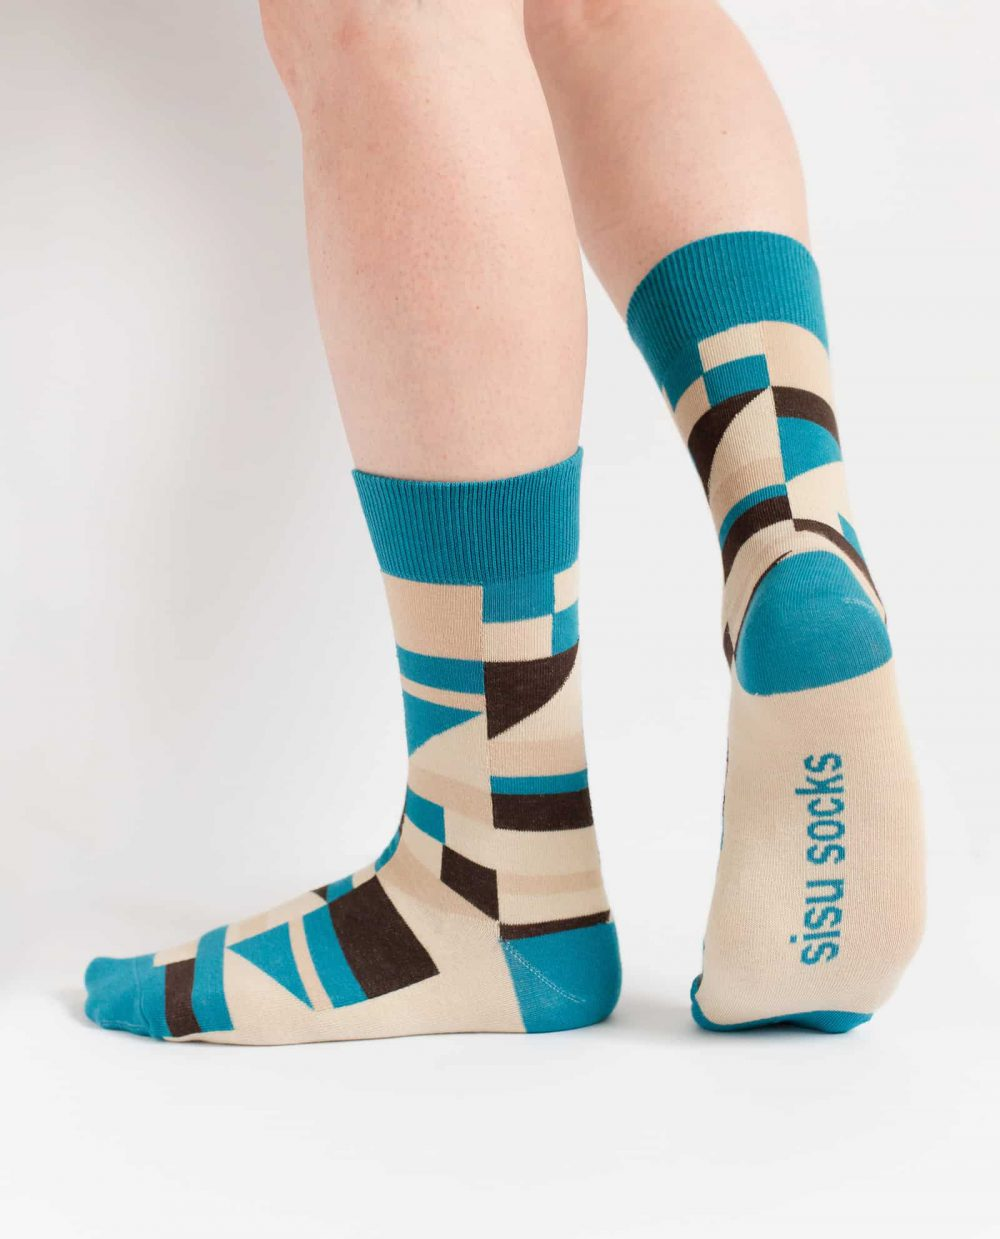 may ayim socks for women inspired by blues in Schwarzweiß from sisu socks